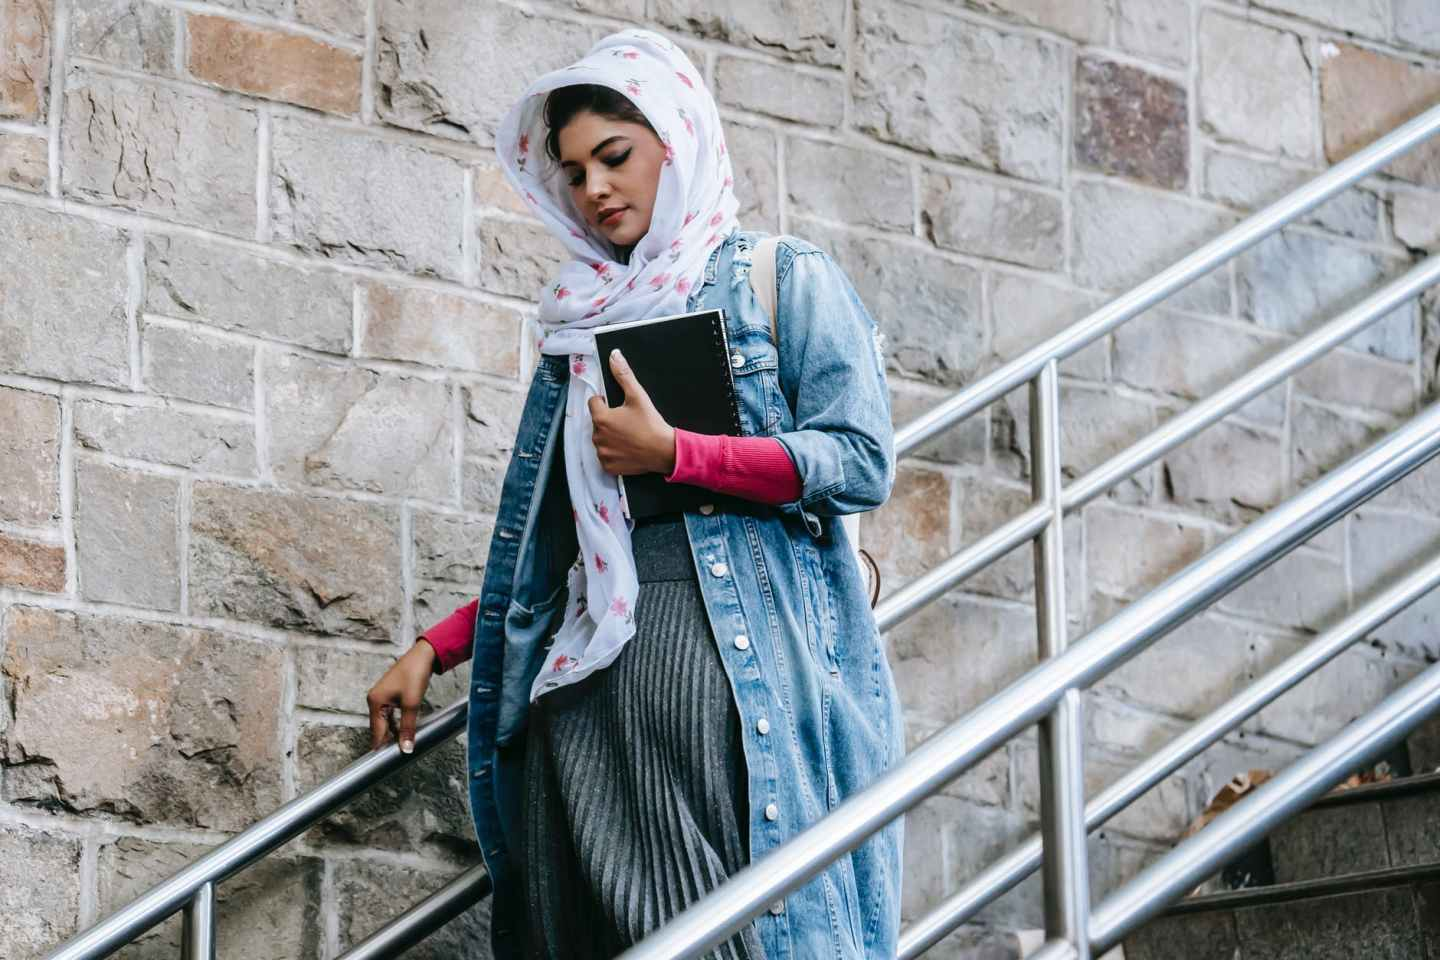 calm young woman in hijab walking downstairs with planner